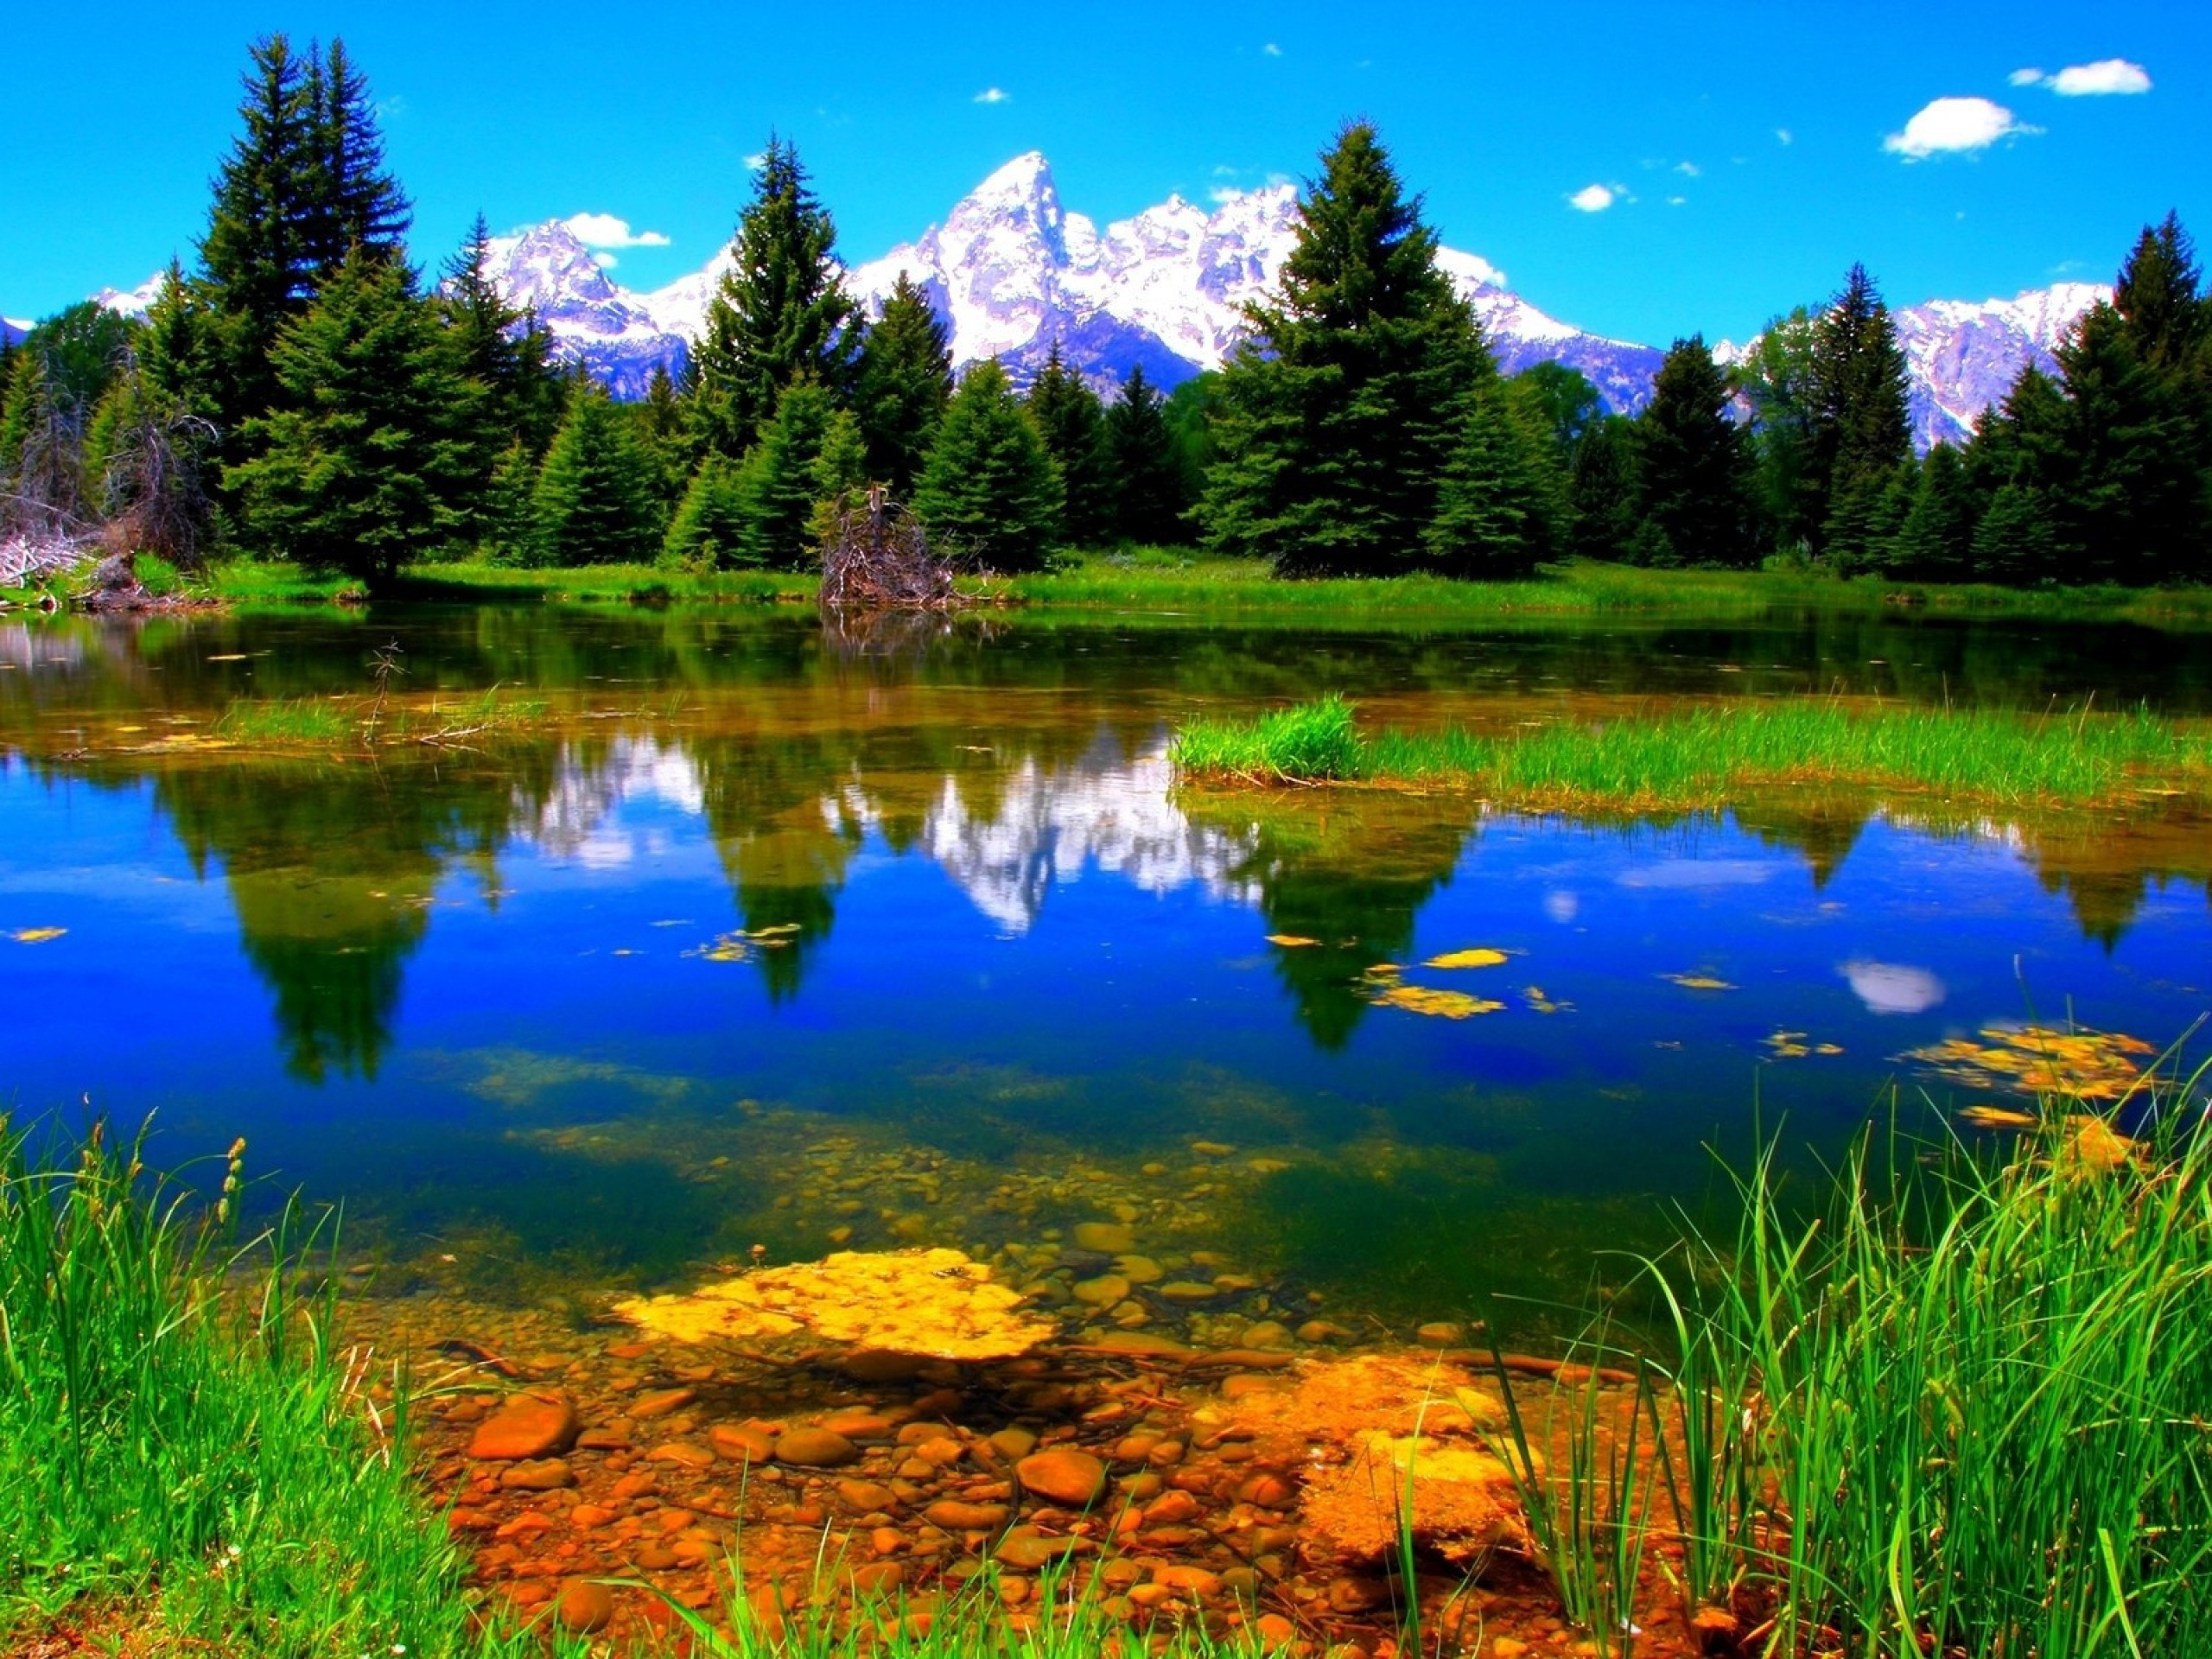 Beautiful Lake Picture Wallpaper 8656 #1452 Wallpaper | Dexab